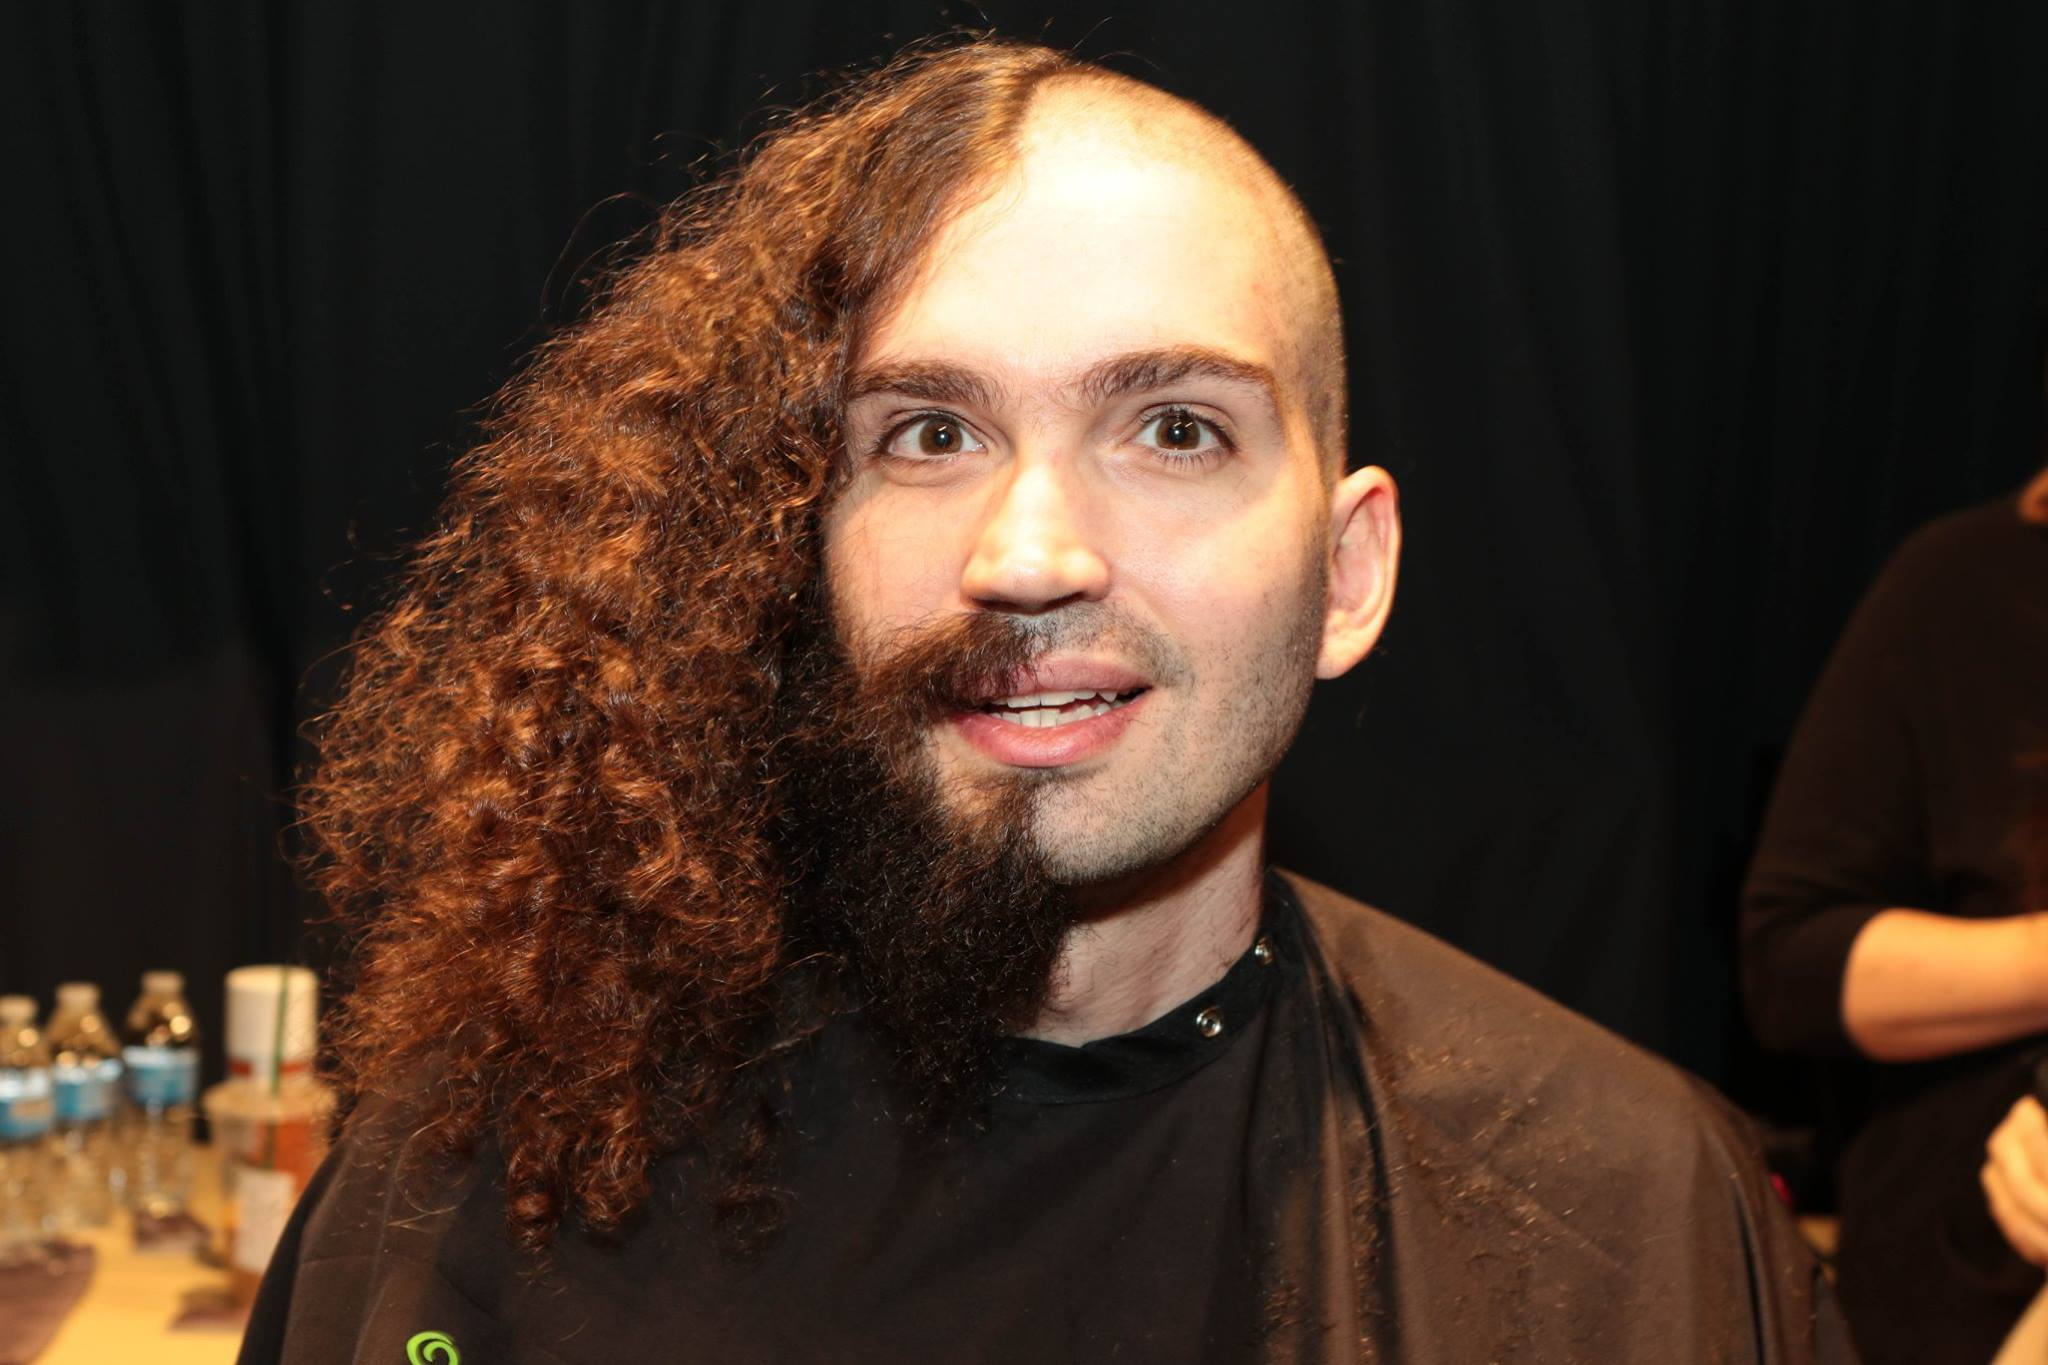 Man with hair and beard half shaved off